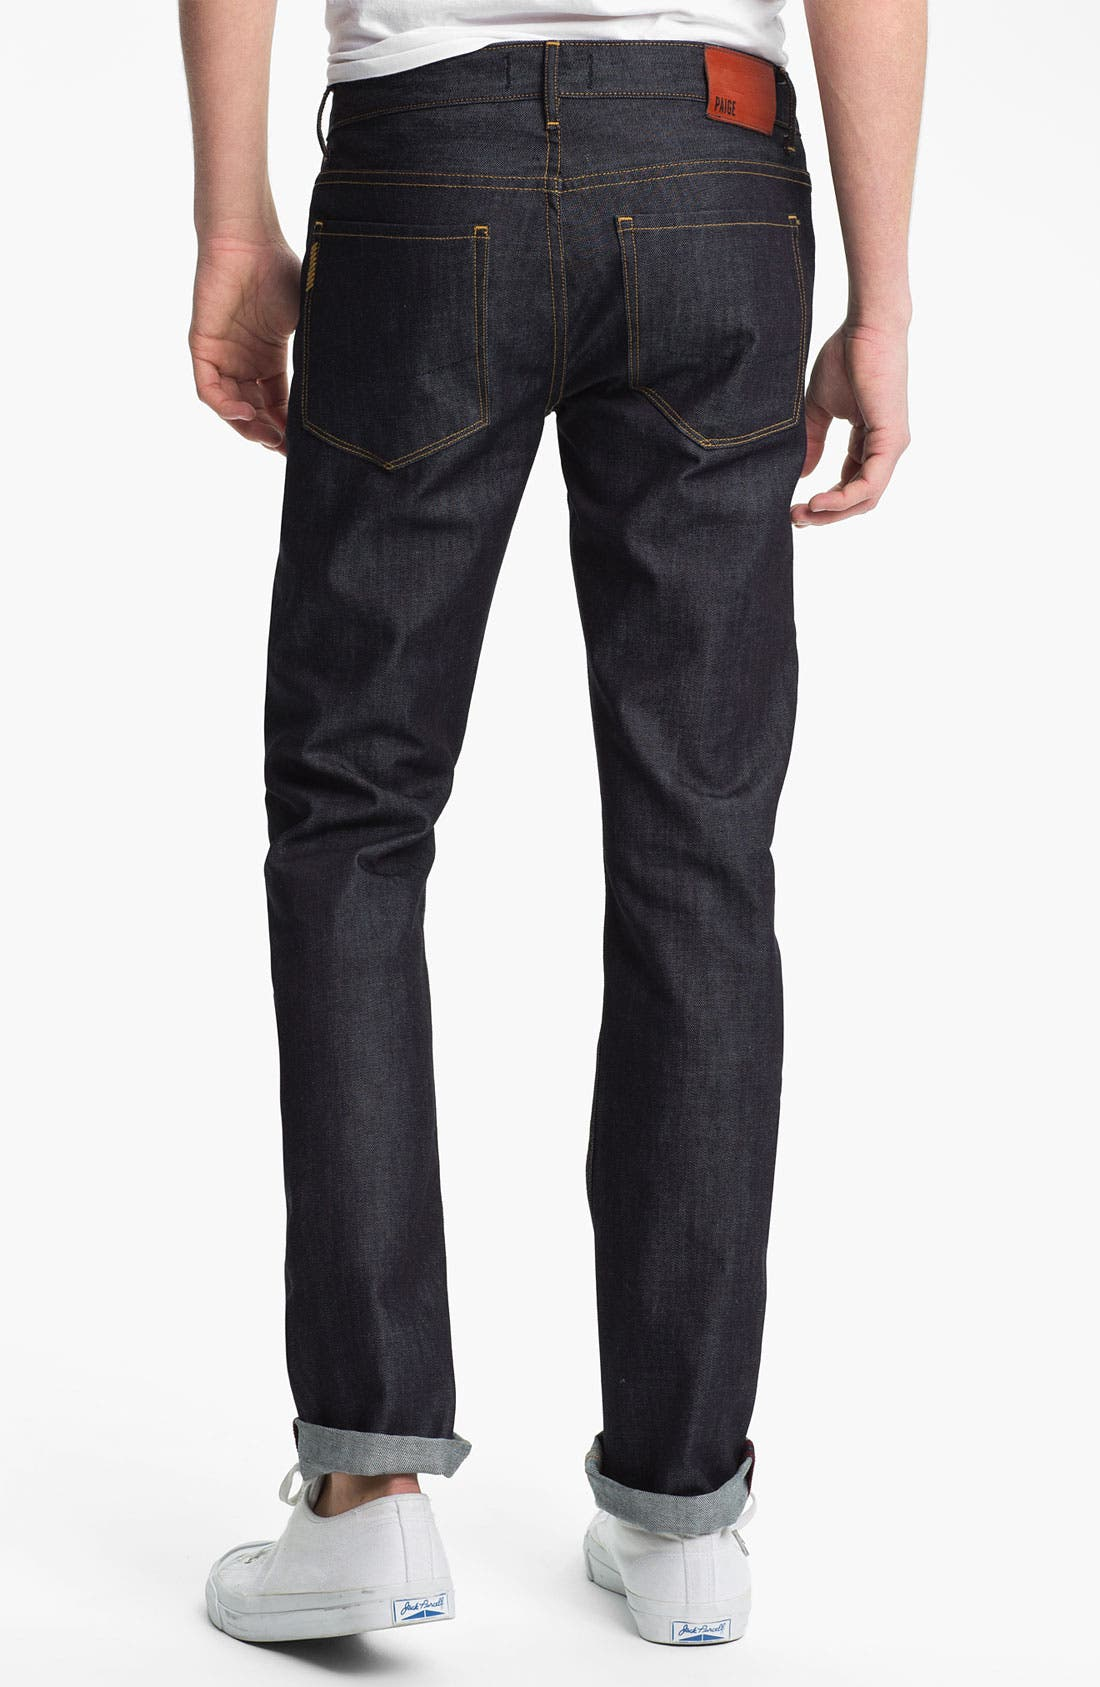 Alternate Image 1 Selected - PAIGE 'Federal' Slim Fit Jeans (Uncharted)